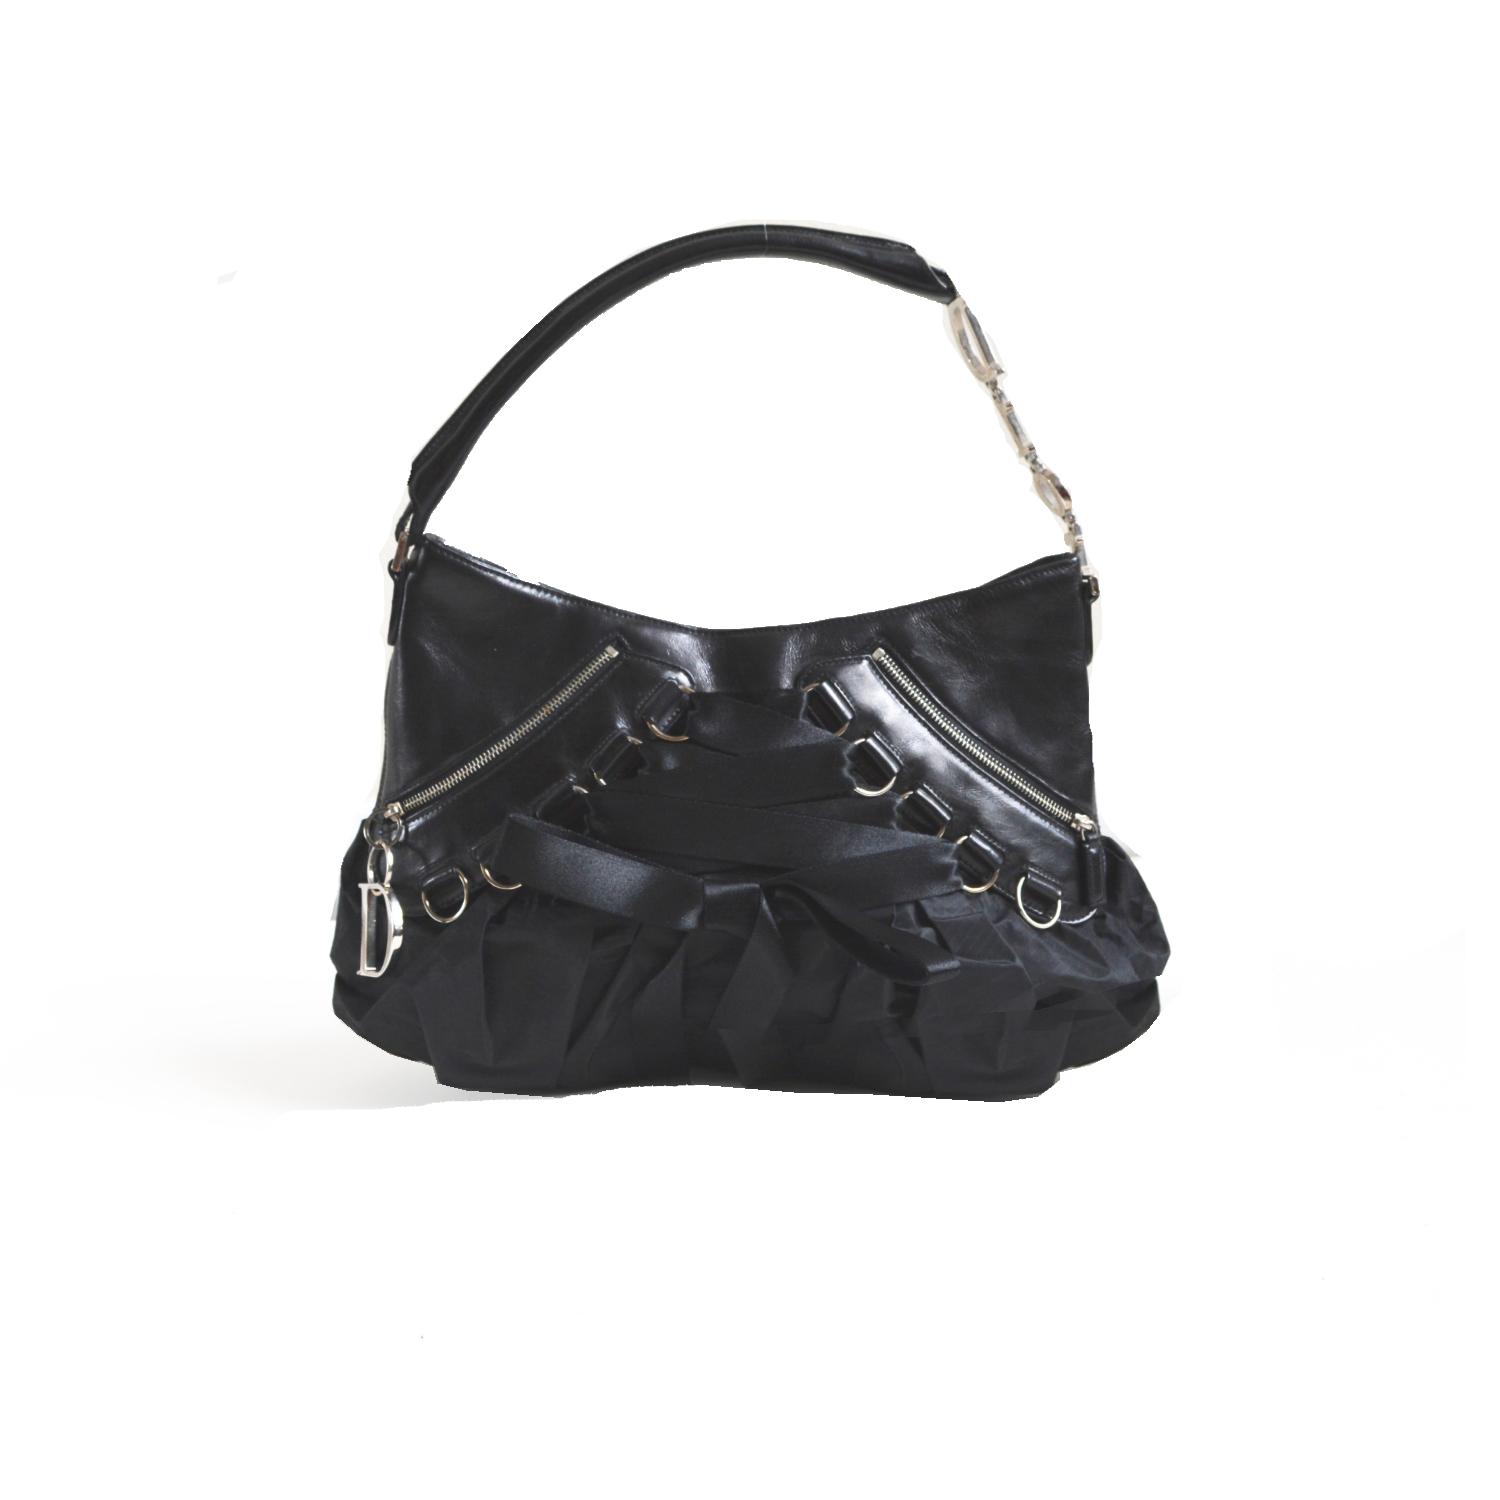 Vintage Dior Corset Lace Up Shoulder Bag with Spellout Strap in Black   NITRYL